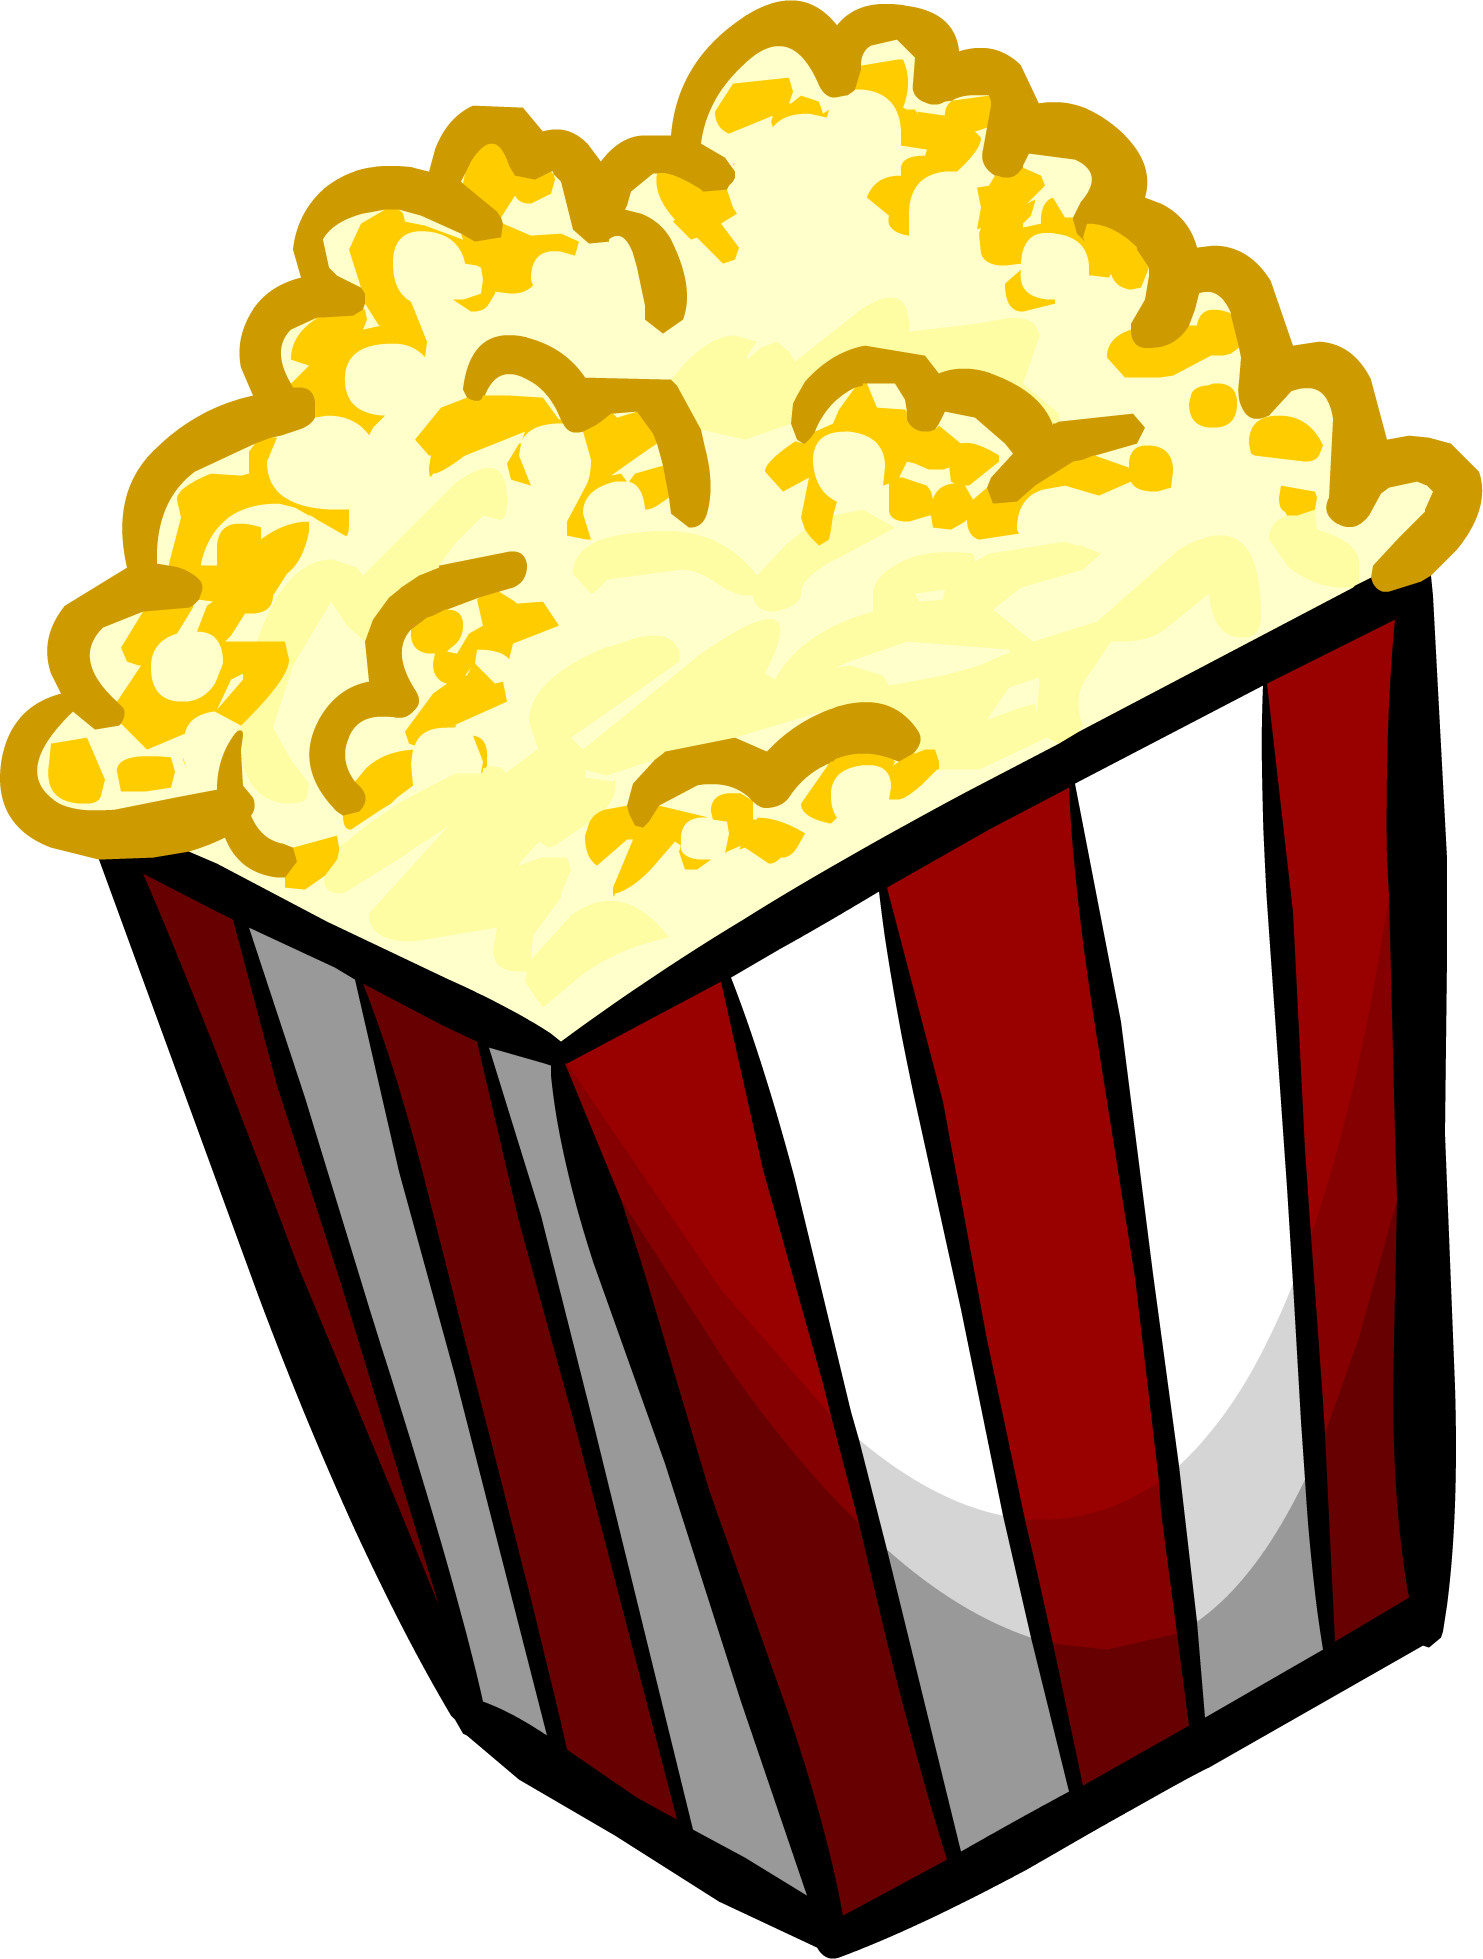 Png Vector Popcorn image #9344